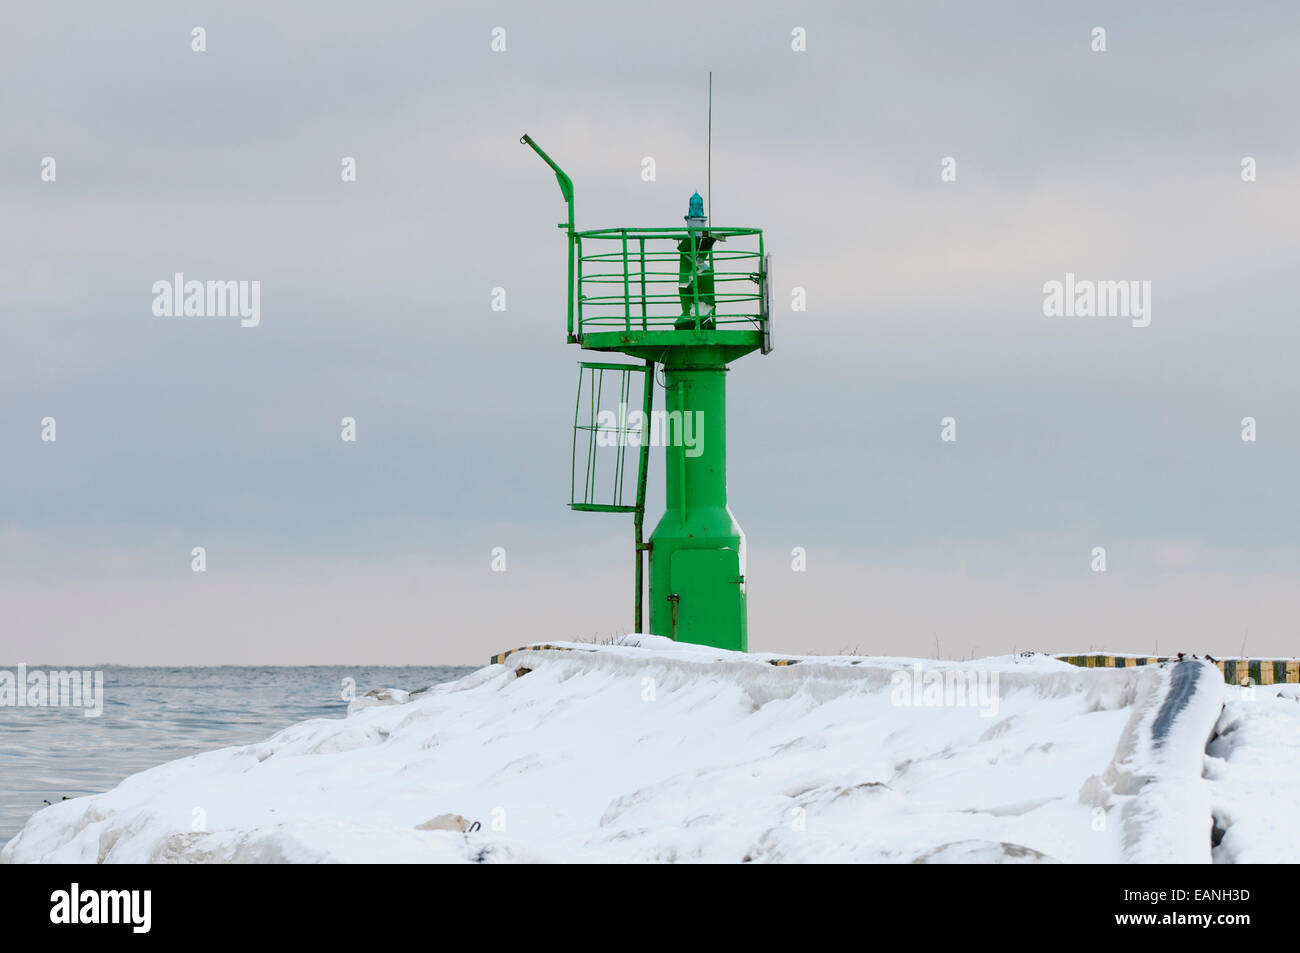 Lighthouse in winter, Mersrags, LatviaStock Photo